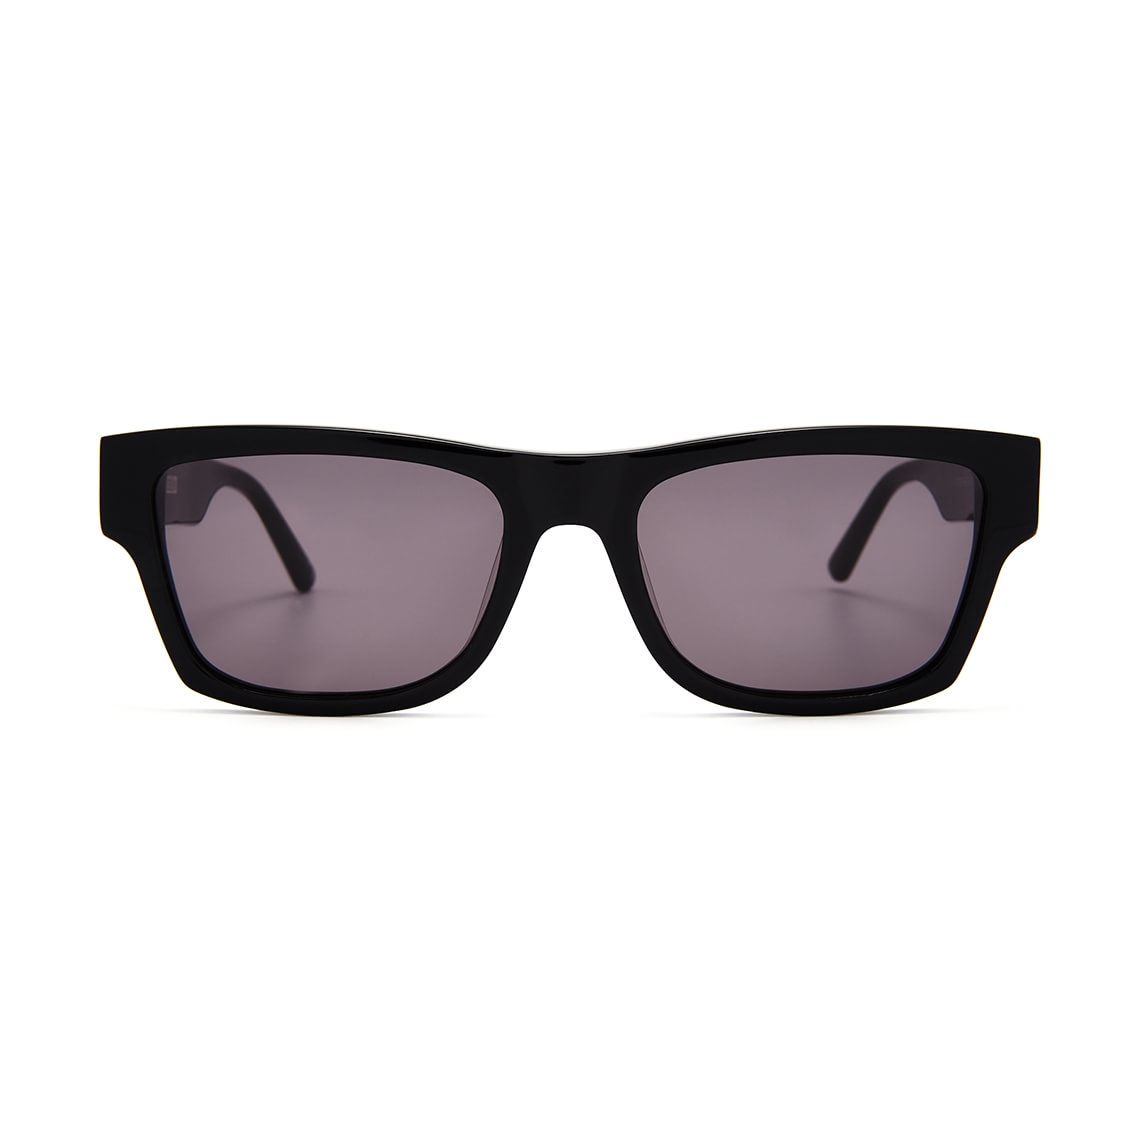 EOE EYEWEAR Seskarö Northern Black 5418